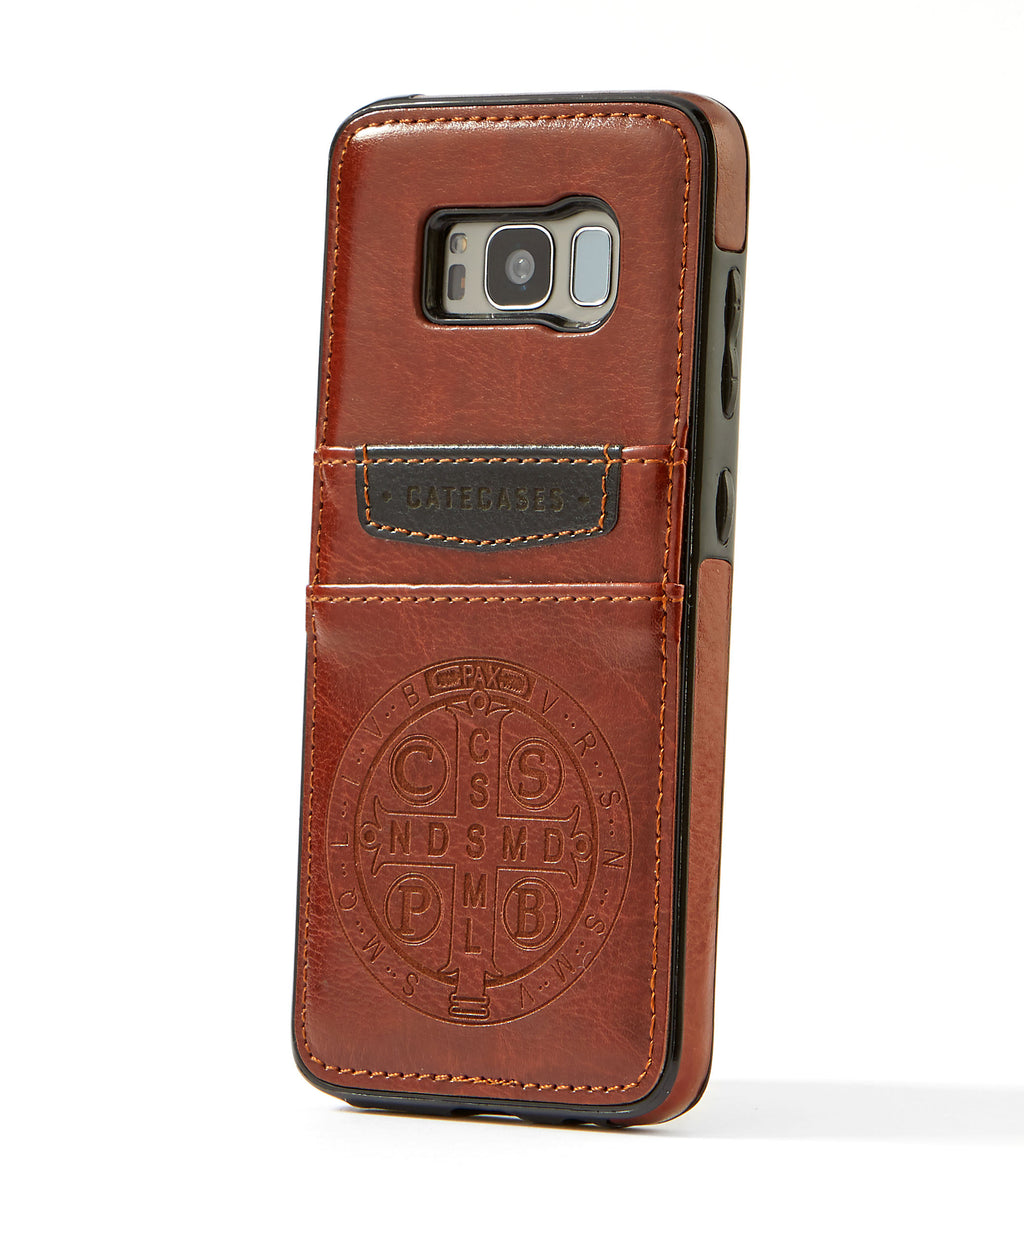 2-Slot Leather Case